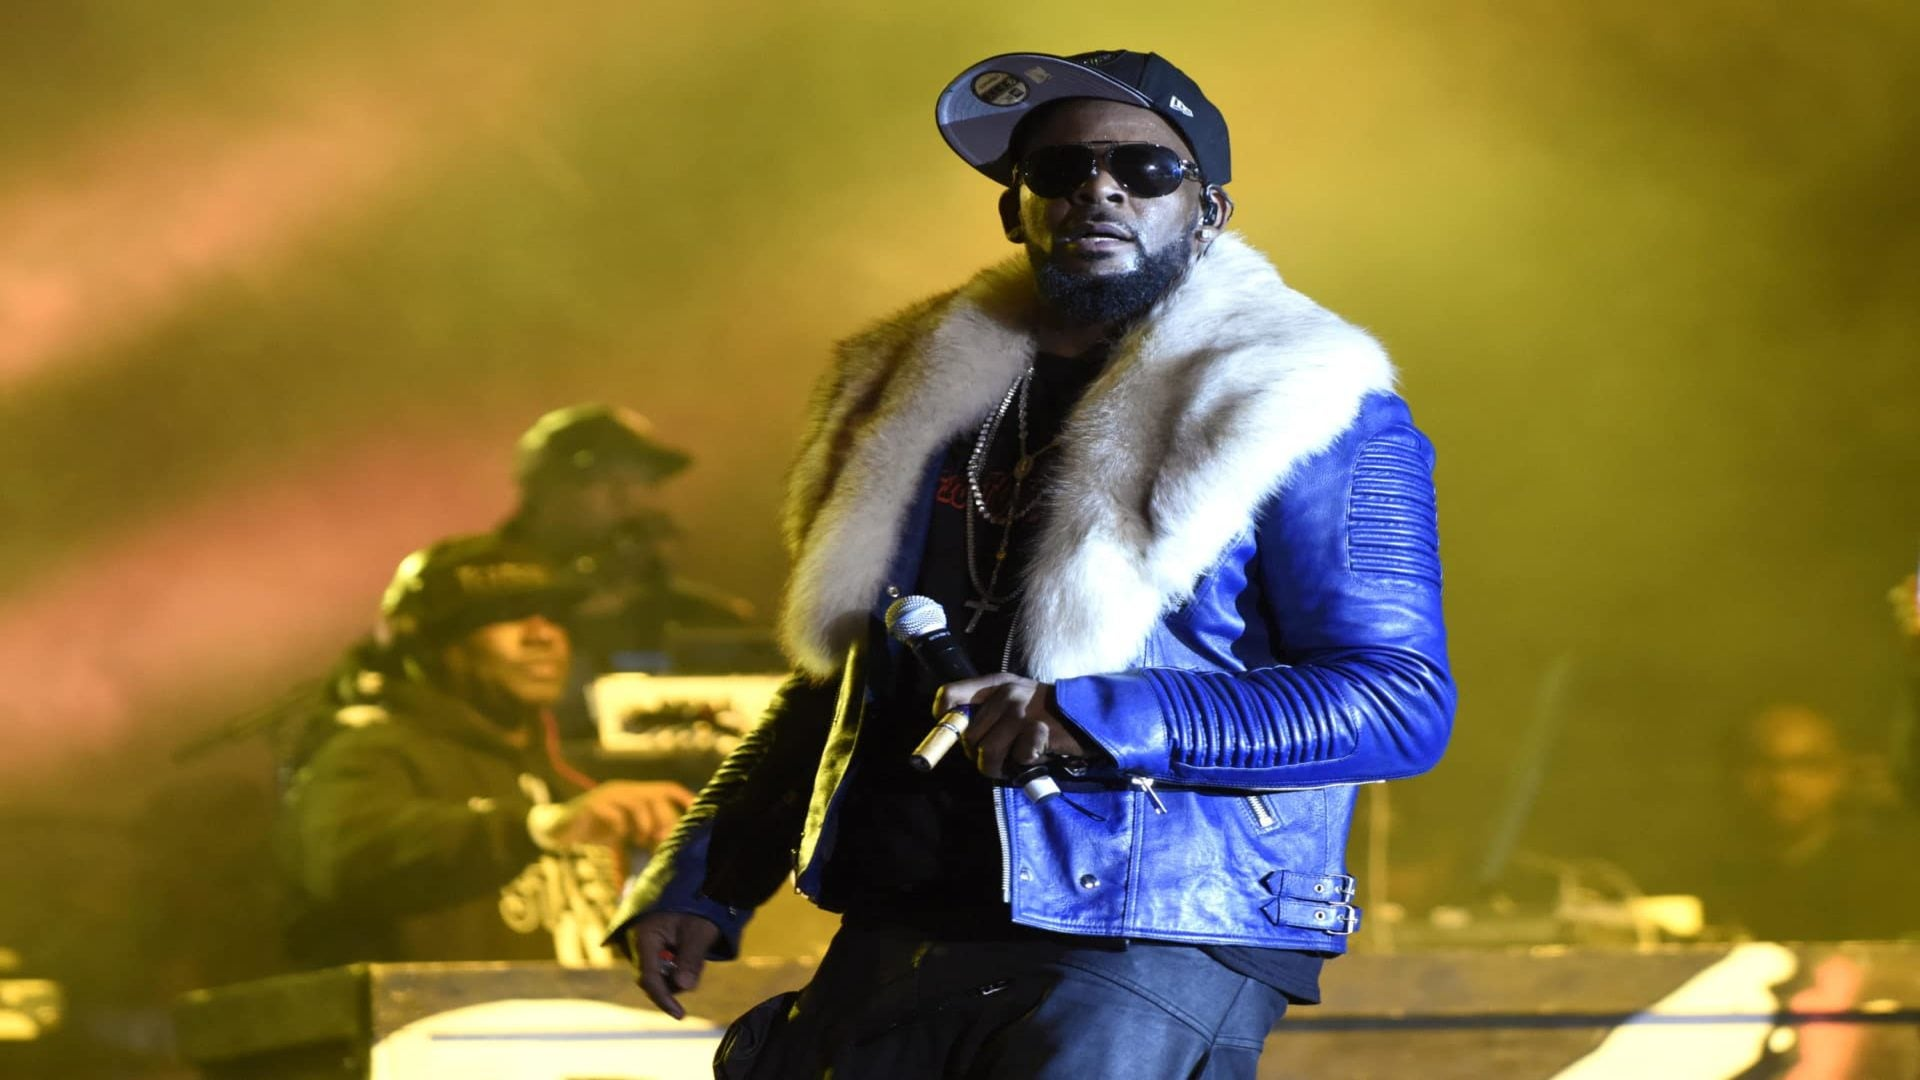 Dubai Denies R. Kelly's Claims That He Was Booked To Perform There